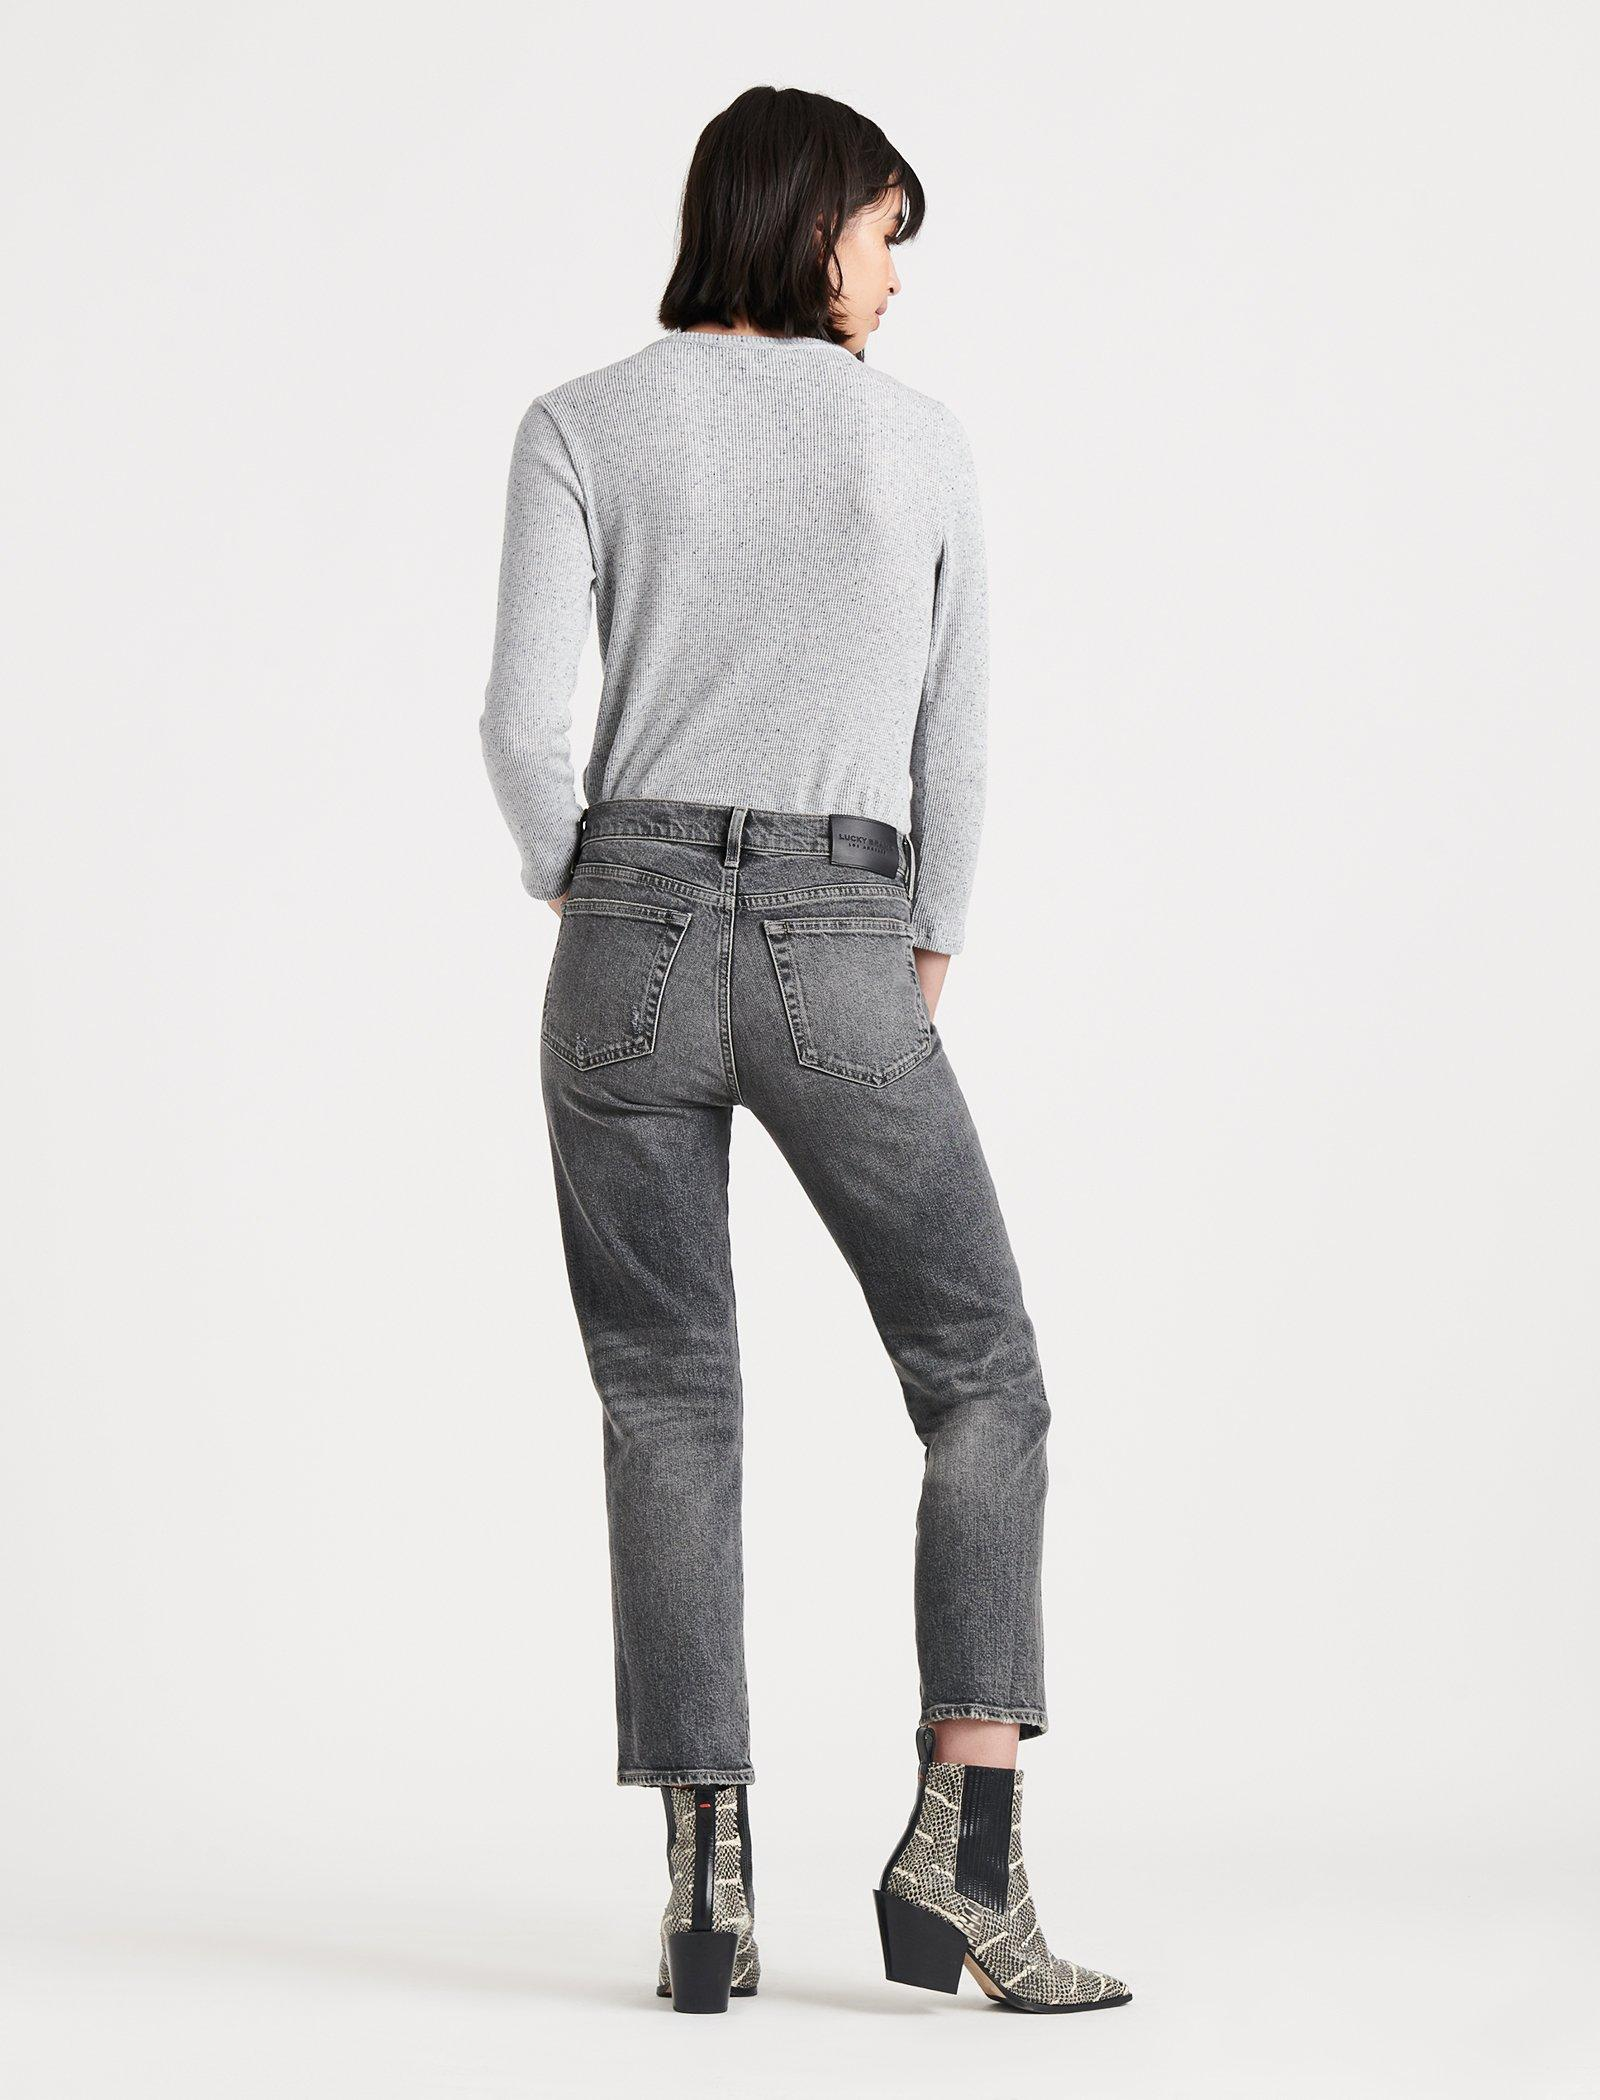 MID RISE AUTHENTIC STRAIGHT CROP JEAN, image 4